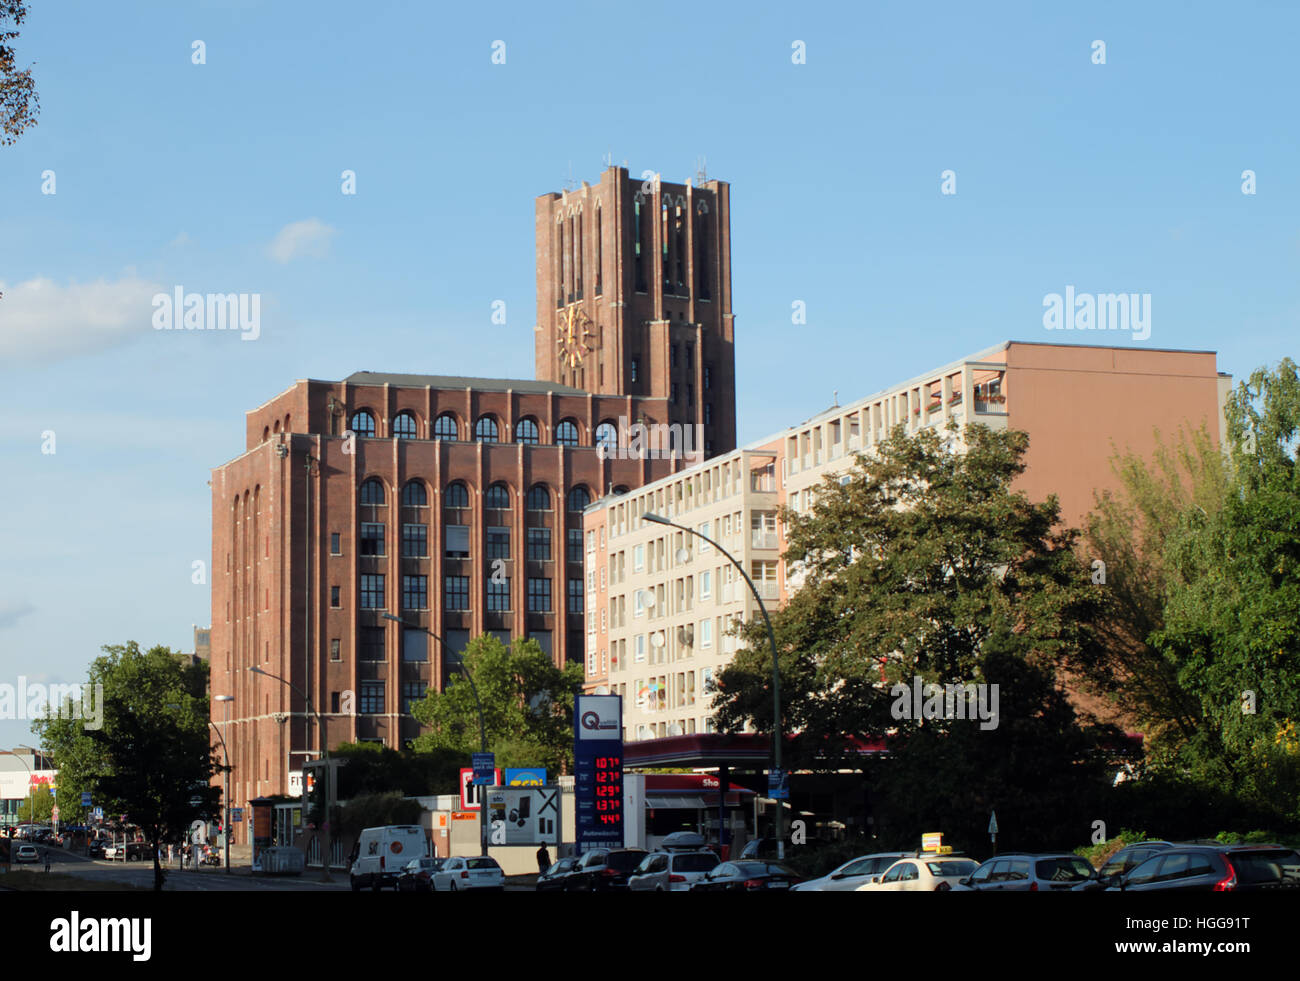 The Ulsteinhaus Tower from the south west, seen from MariendorferDamm. - Stock Image